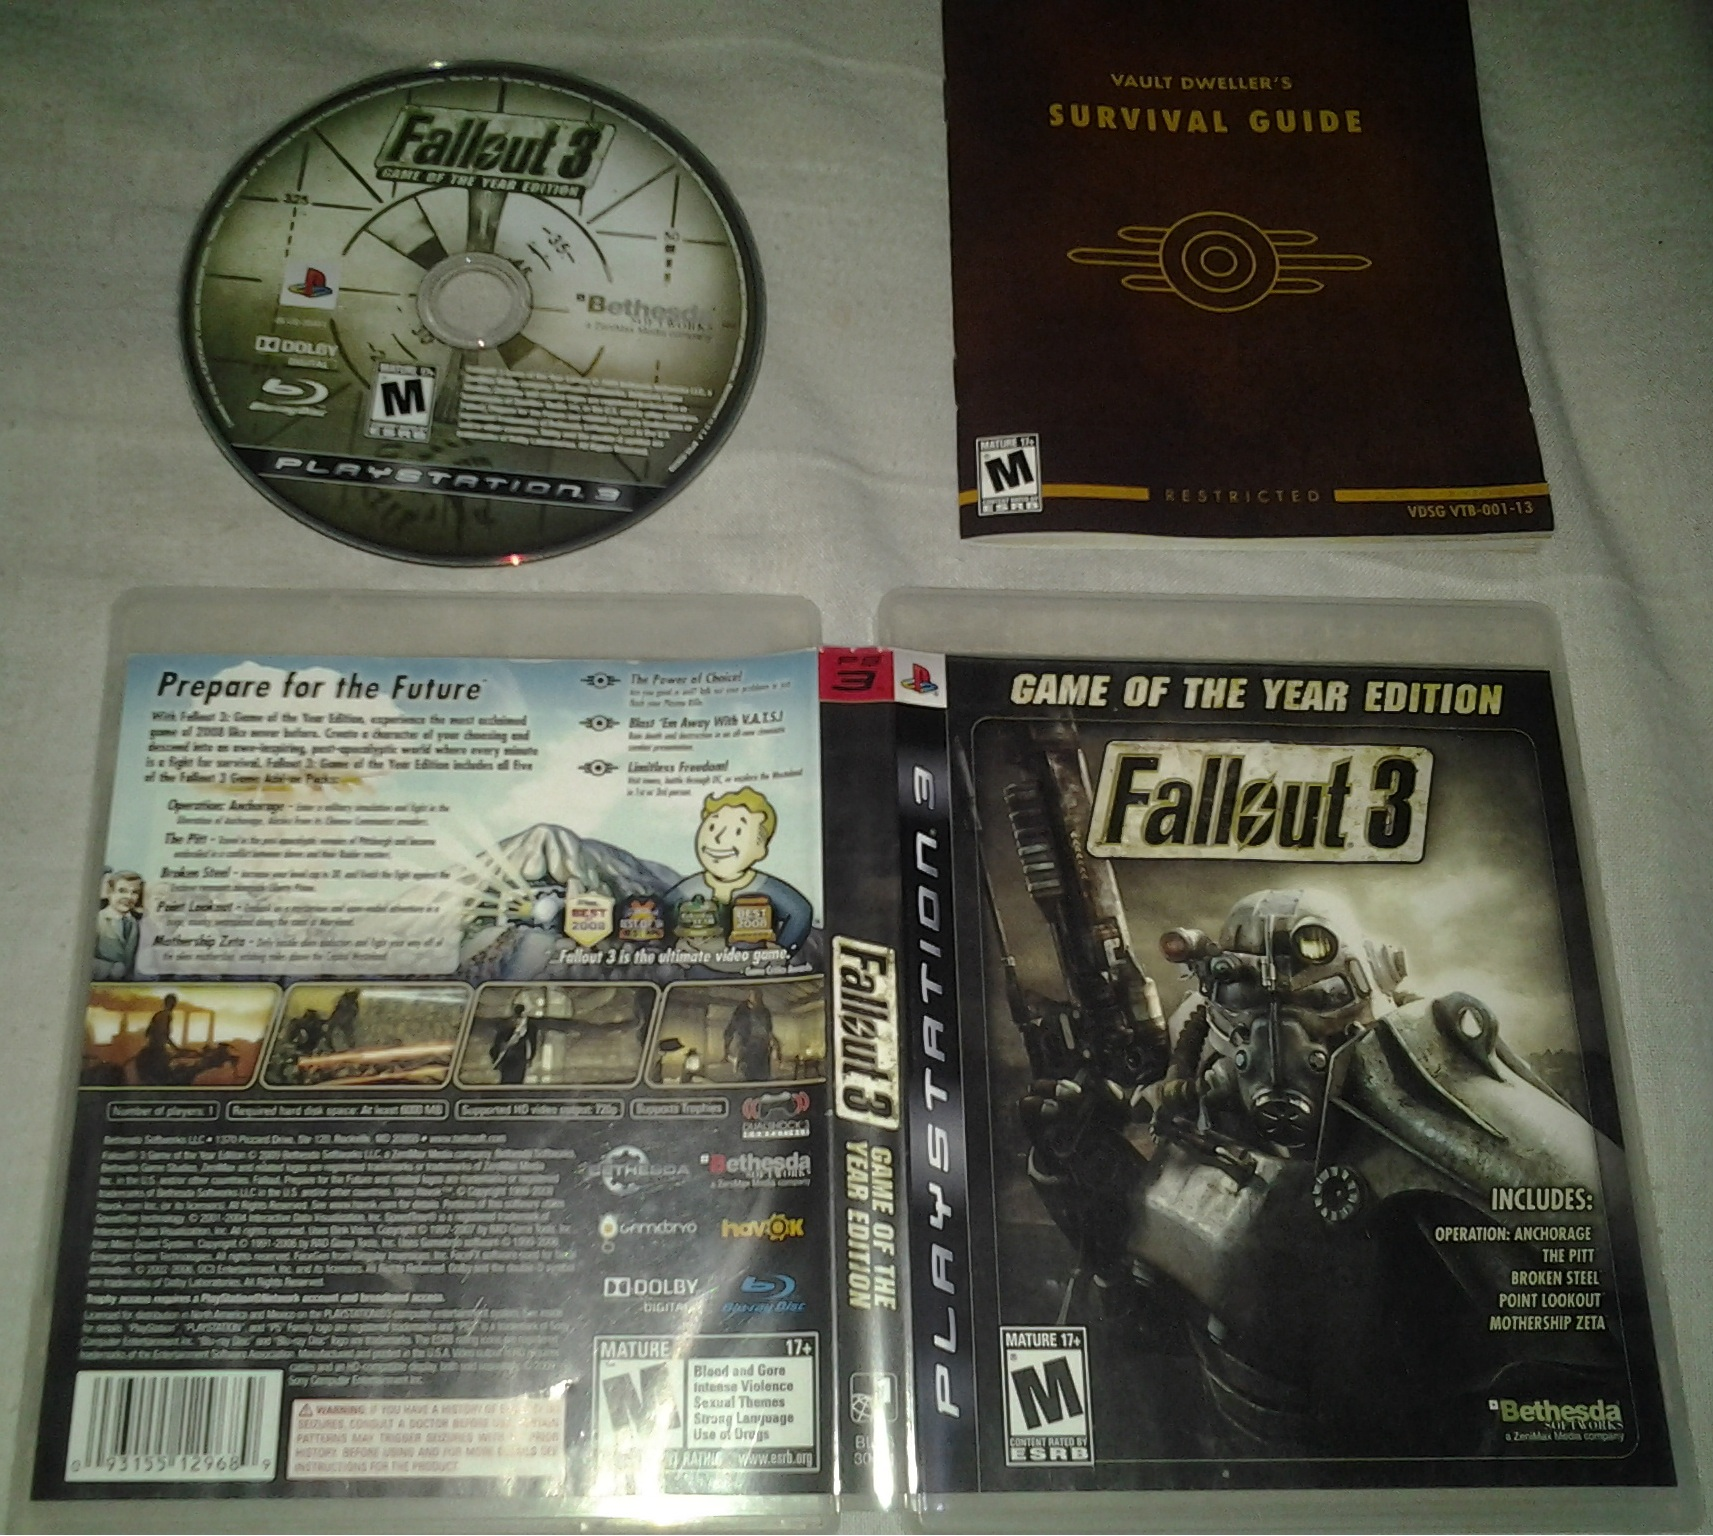 fallout 3 fallout wiki fandom powered by wikia rh fallout wikia com fallout 3 quest guide xbox 360 fallout 3 weapons guide xbox 360